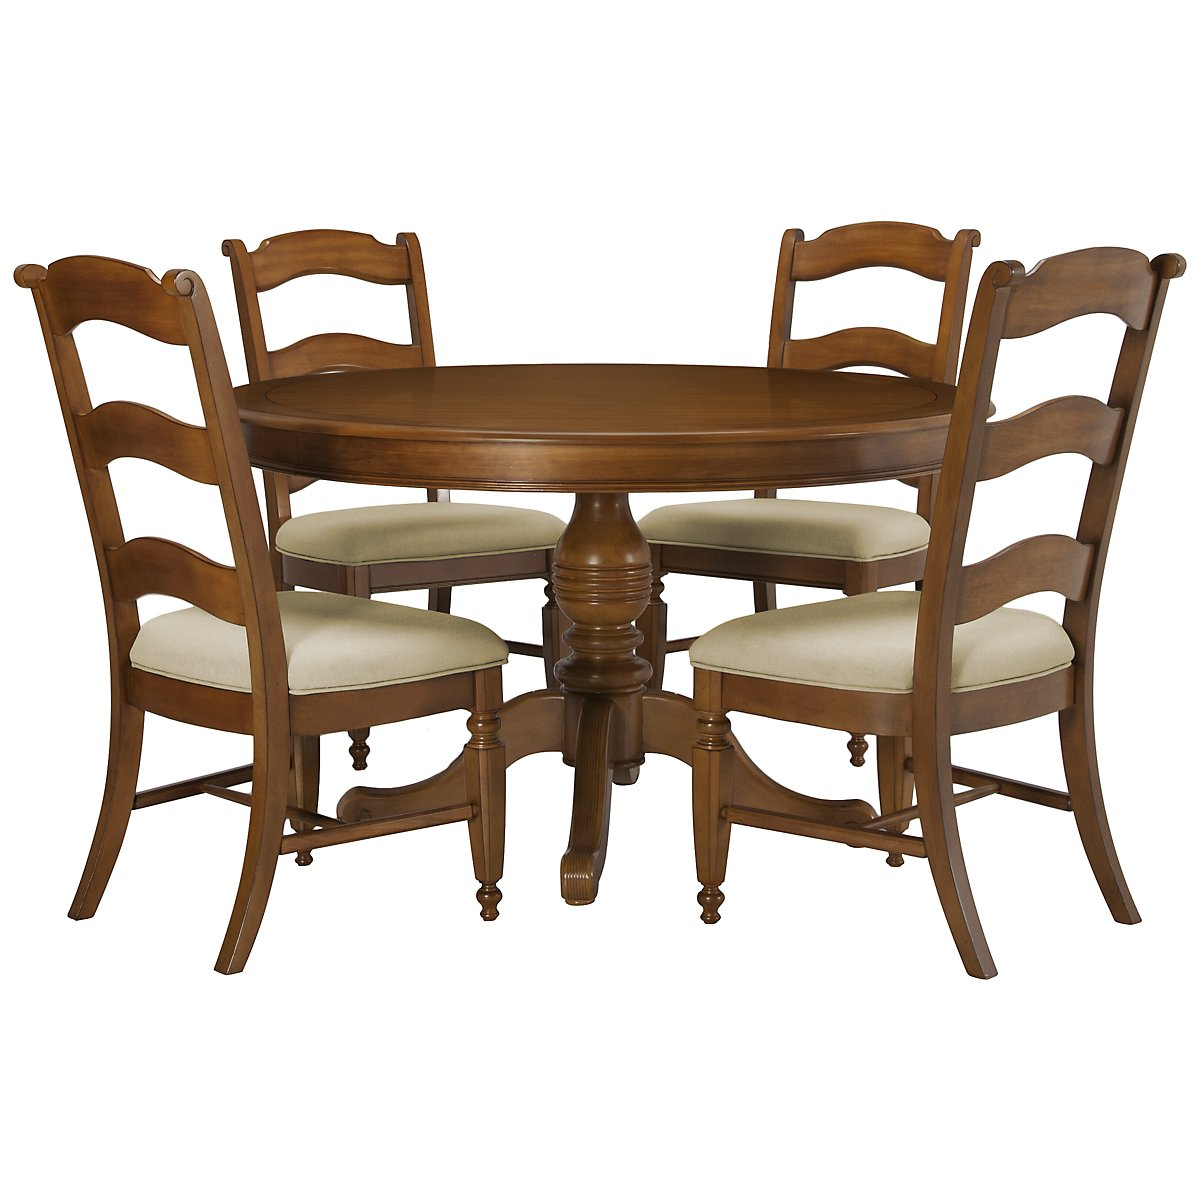 Claire Mid Tone Round Table & 4 Wood Chairs